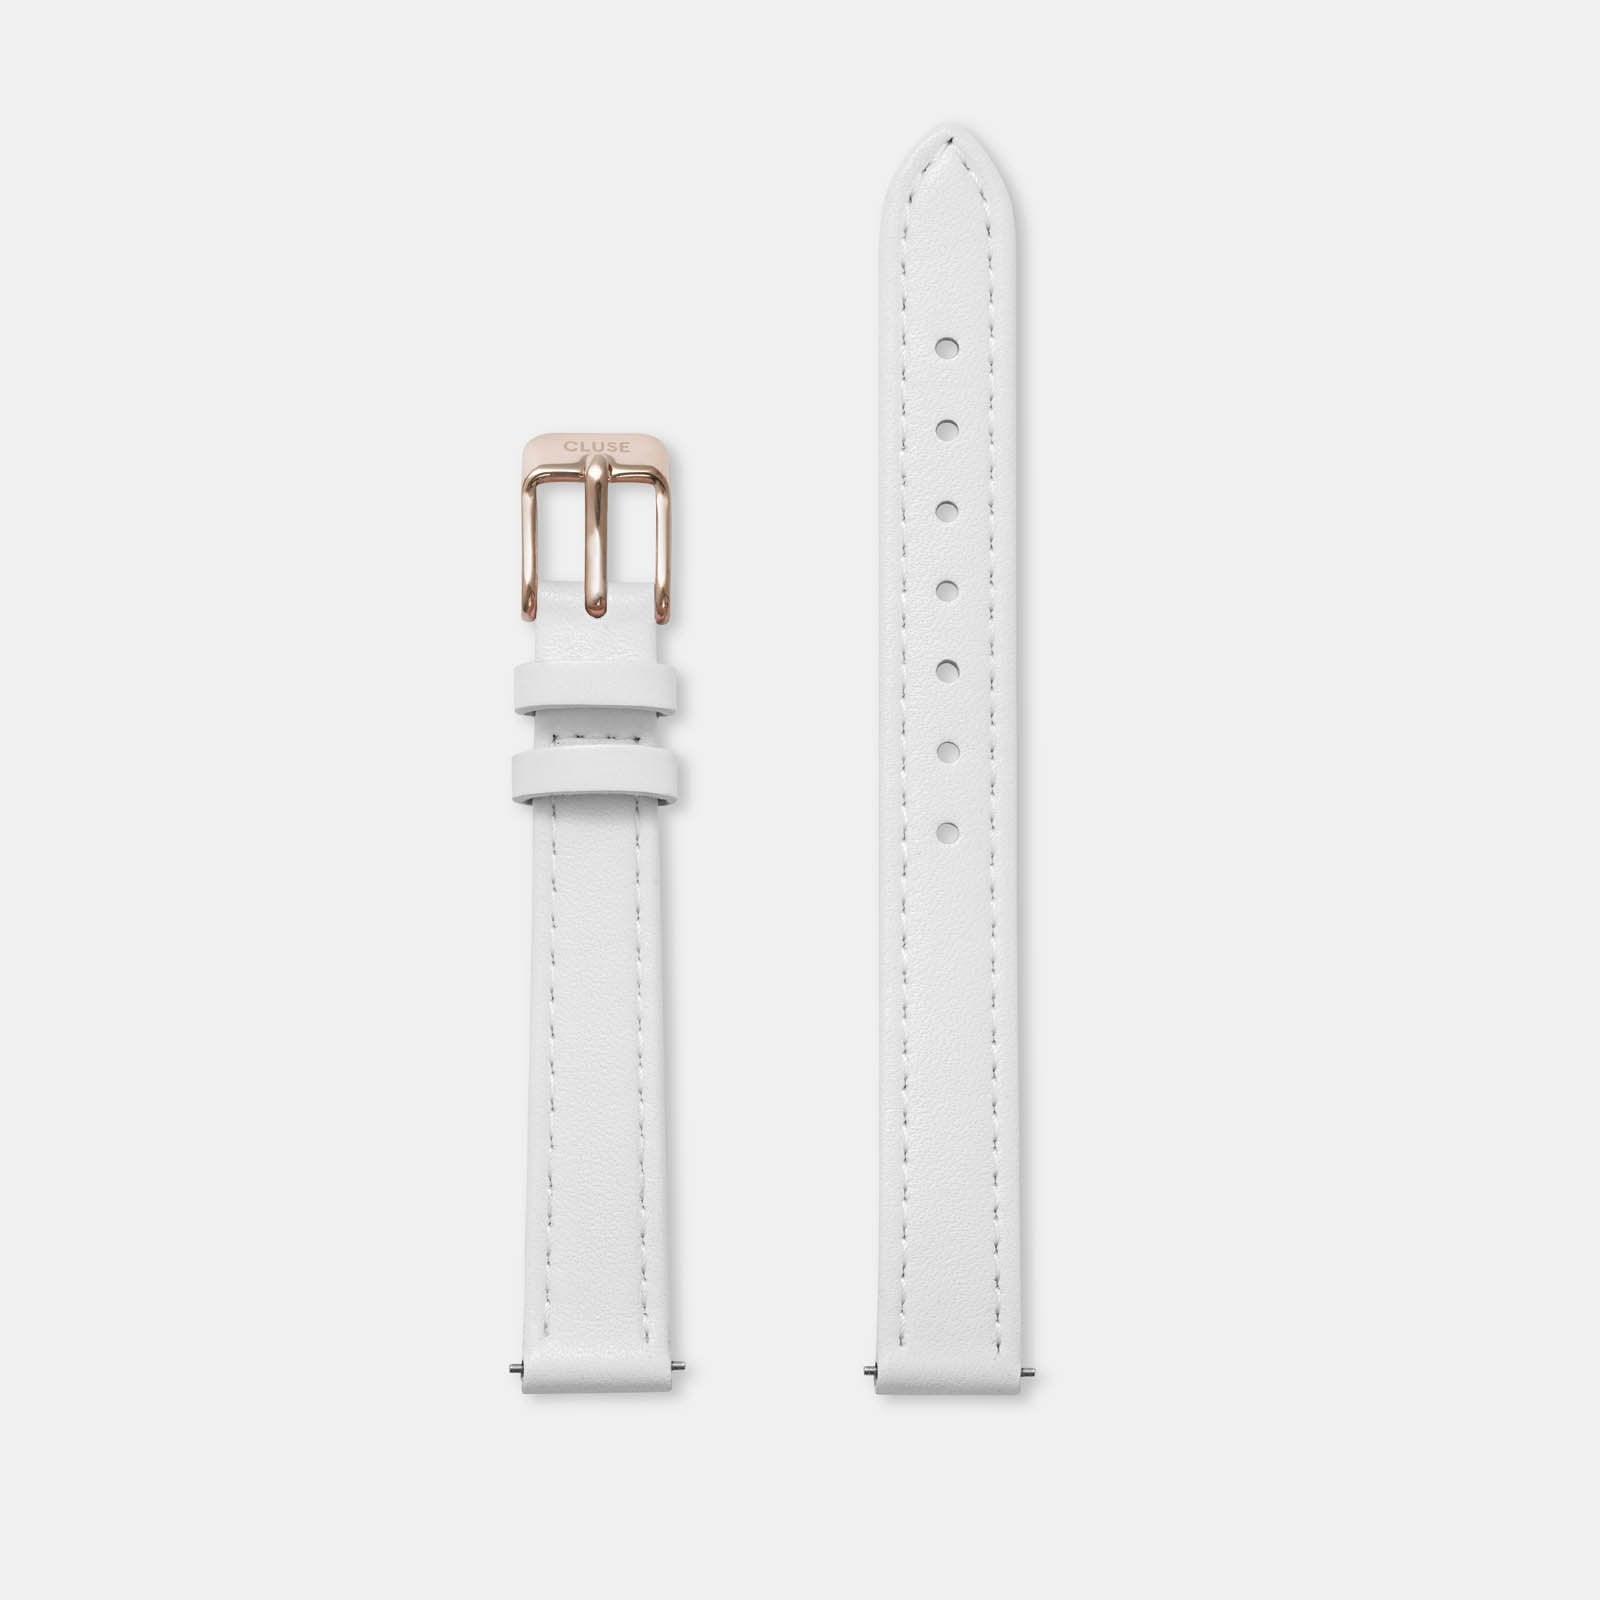 CLUSE 12 mm Strap White/Rose Gold CLS525 - strap